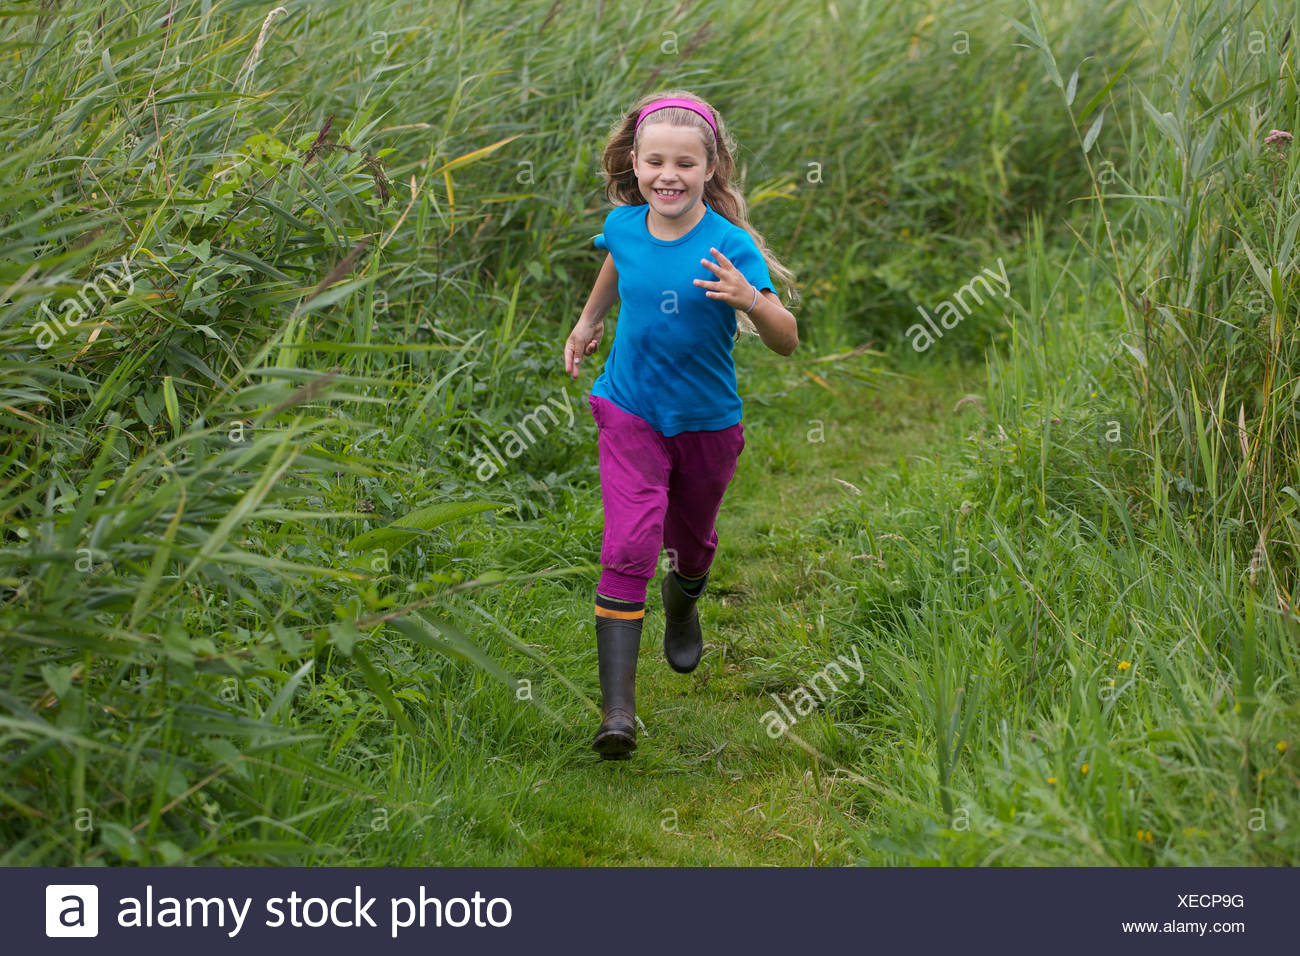 A little girl runs over a path through high reed, model released Stock Photo